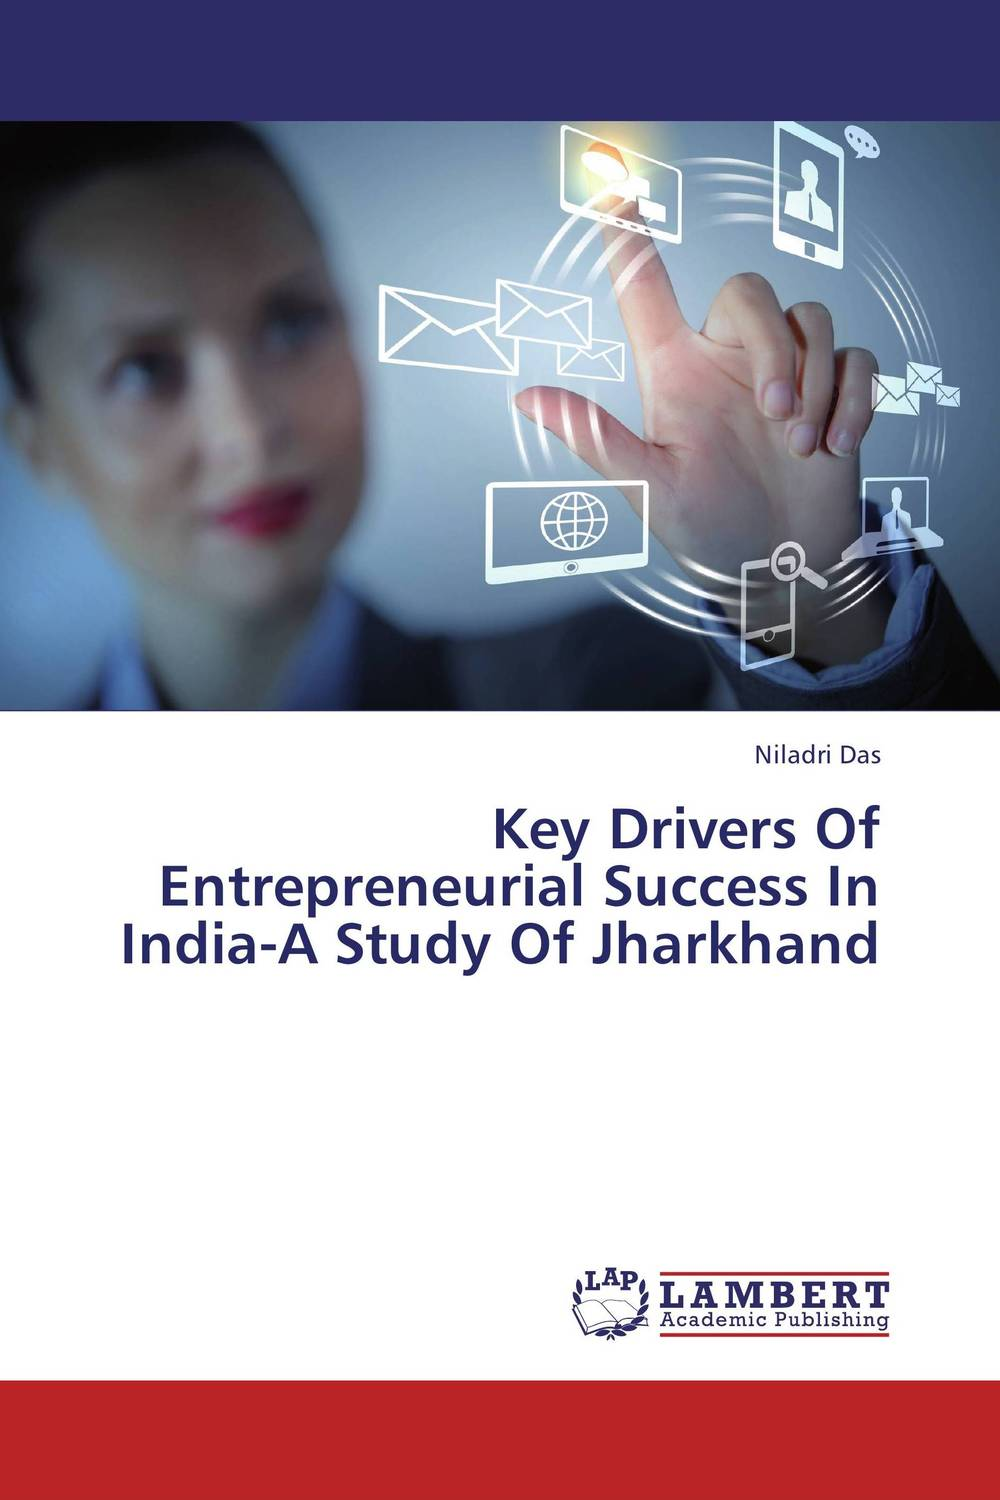 Key Drivers Of Entrepreneurial Success In India-A Study Of Jharkhand david keane the art of deliberate success the 10 behaviours of successful people